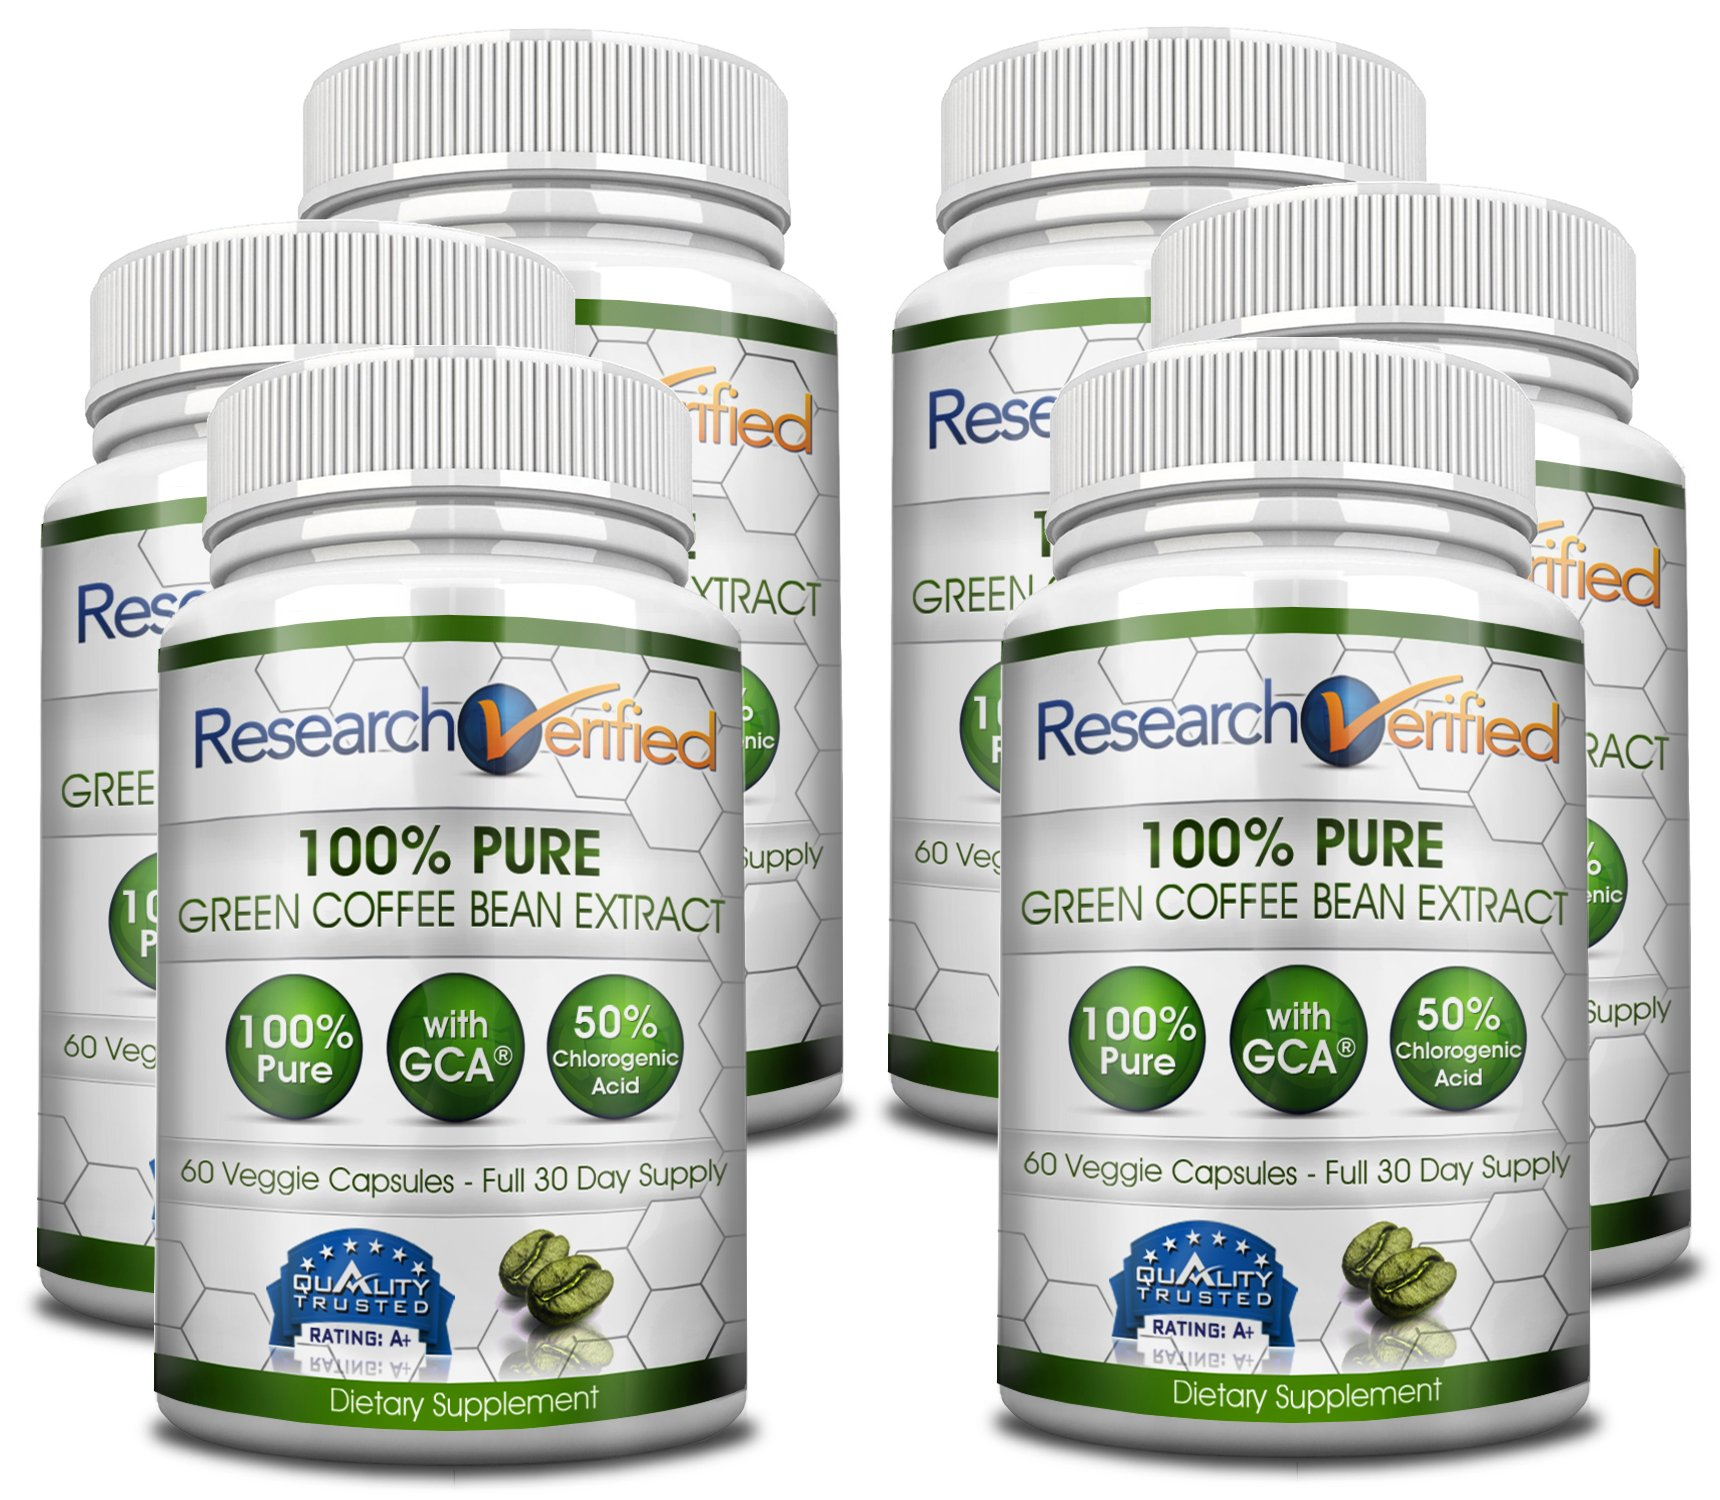 Green Coffee Bean Extract - Six Month Supply - 100% Pure by Research Verified - 50% Chlorogenic Acid - 365 Day 100% Money Back Guarantee - Try Risk Free for Fast and Easy Weight Loss